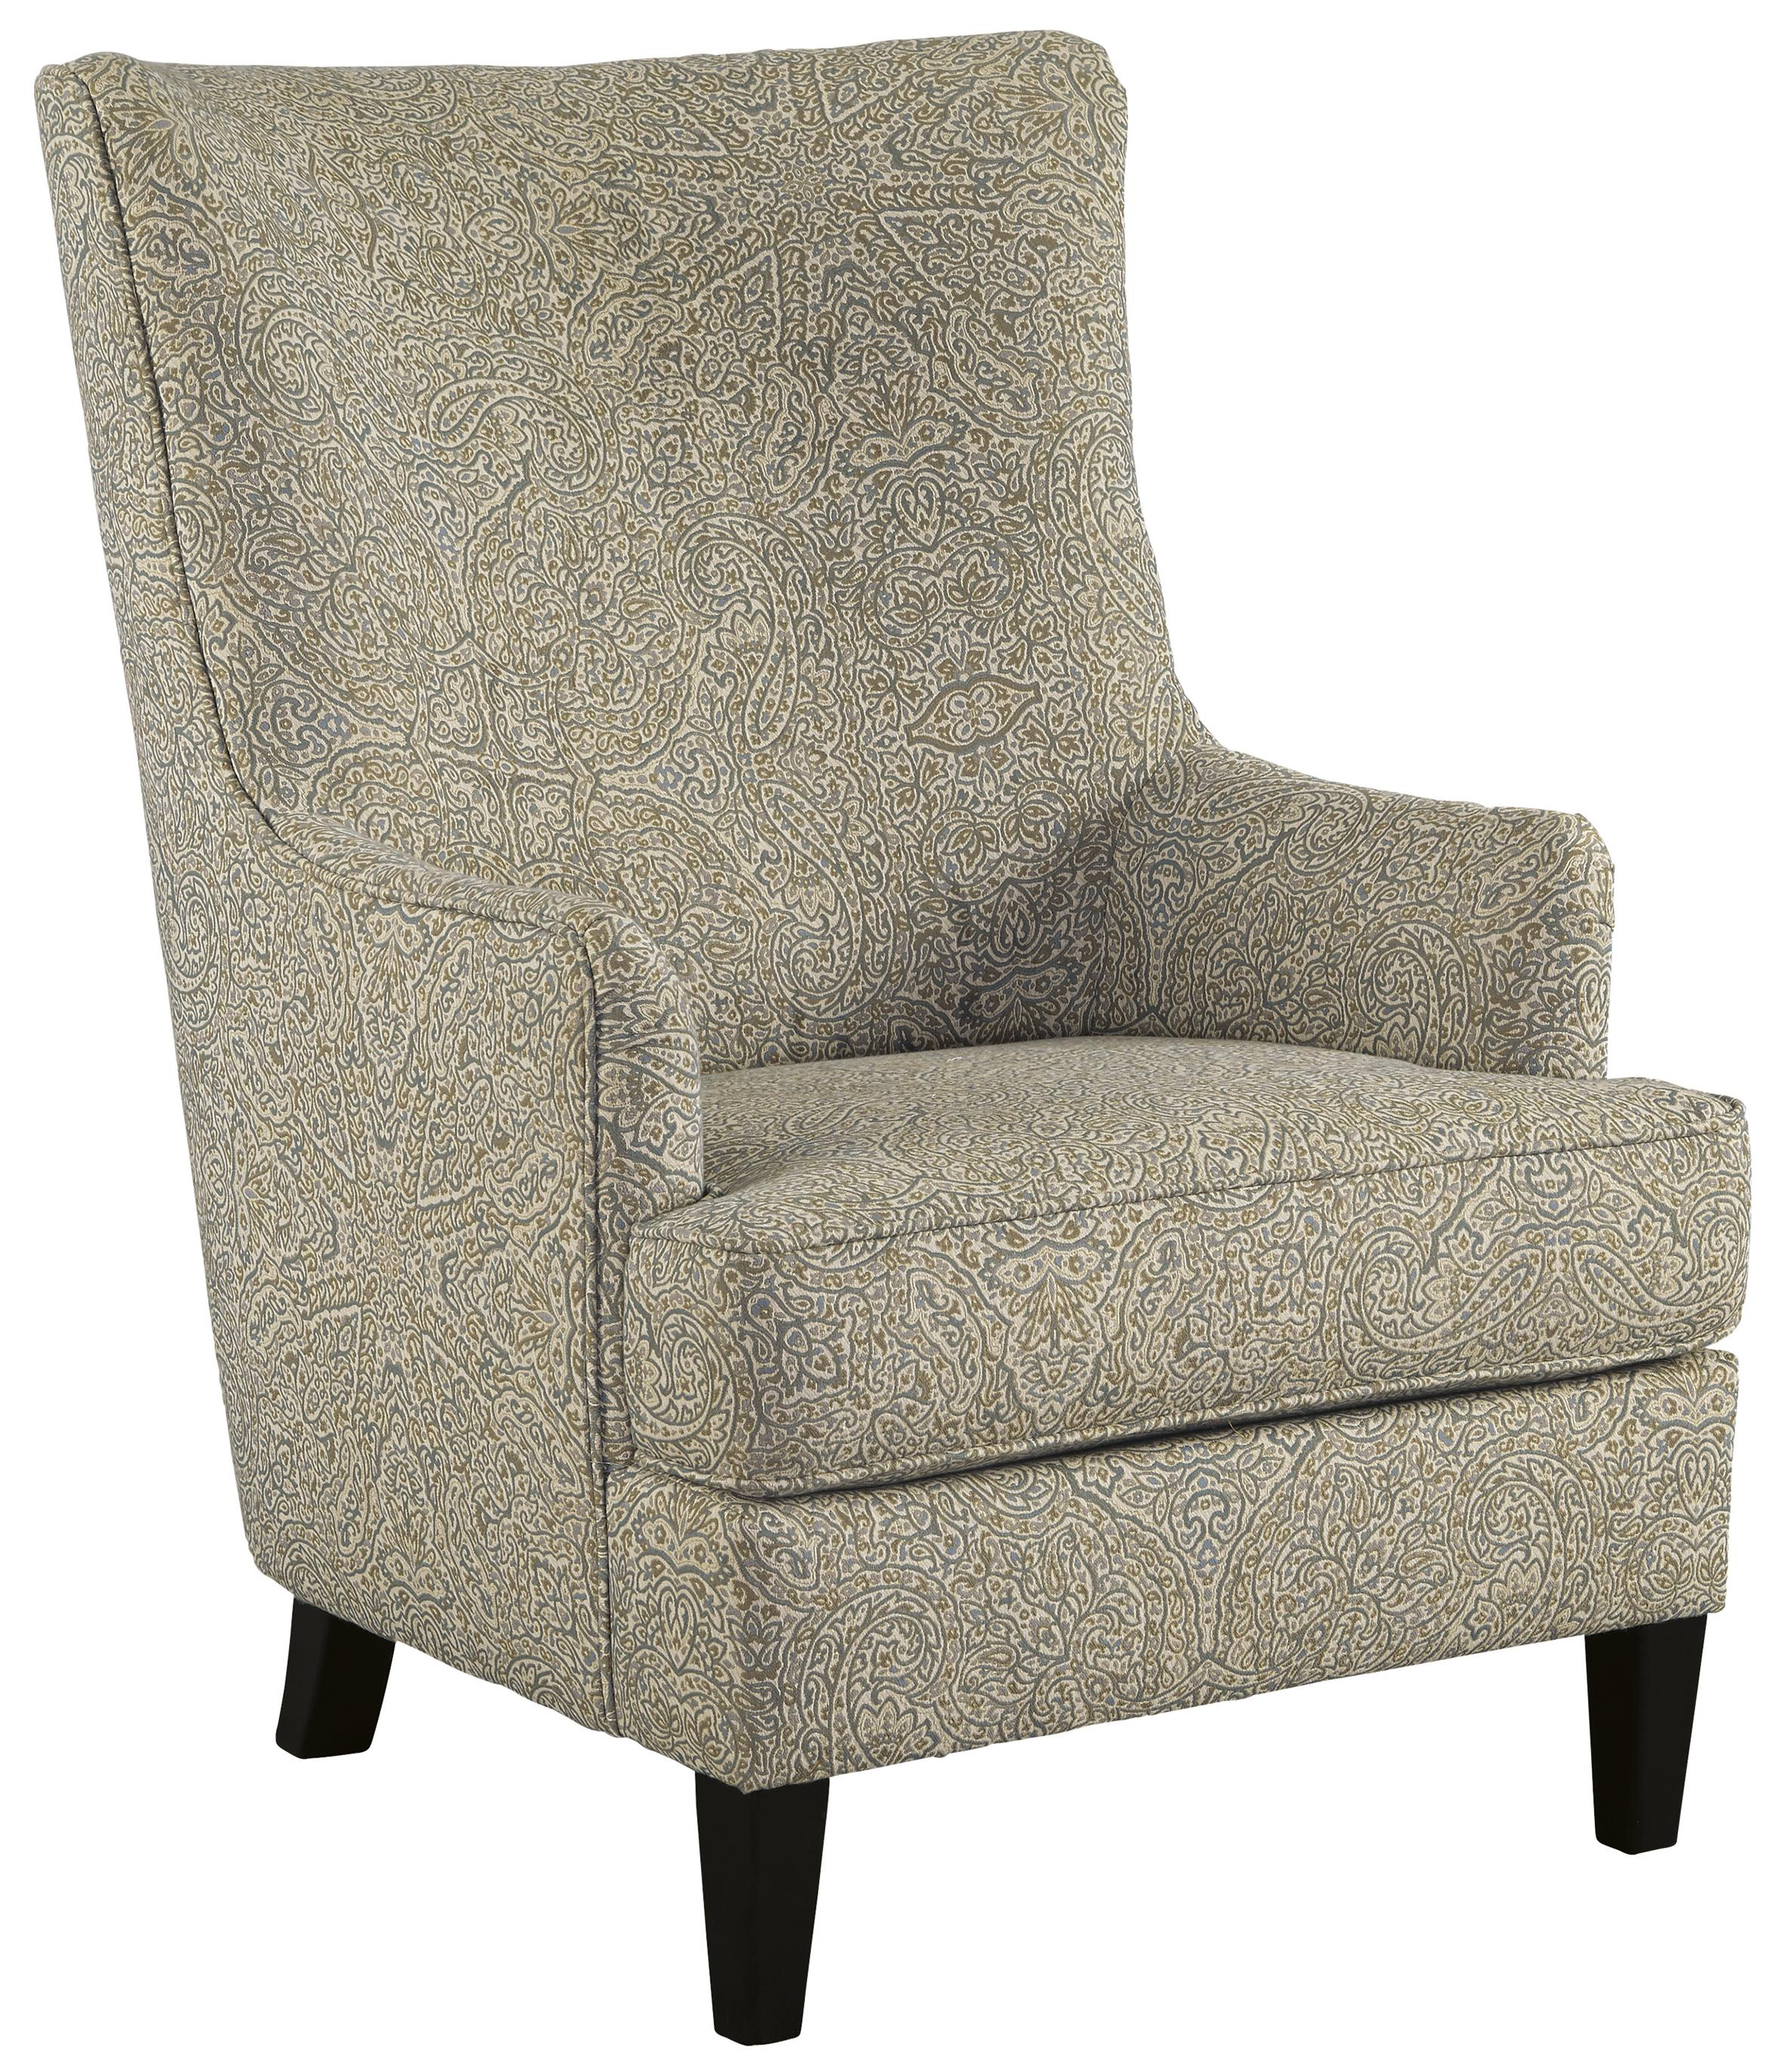 Ashley Chairs Transtional Accent Chair With Wing Back By Signature Design By